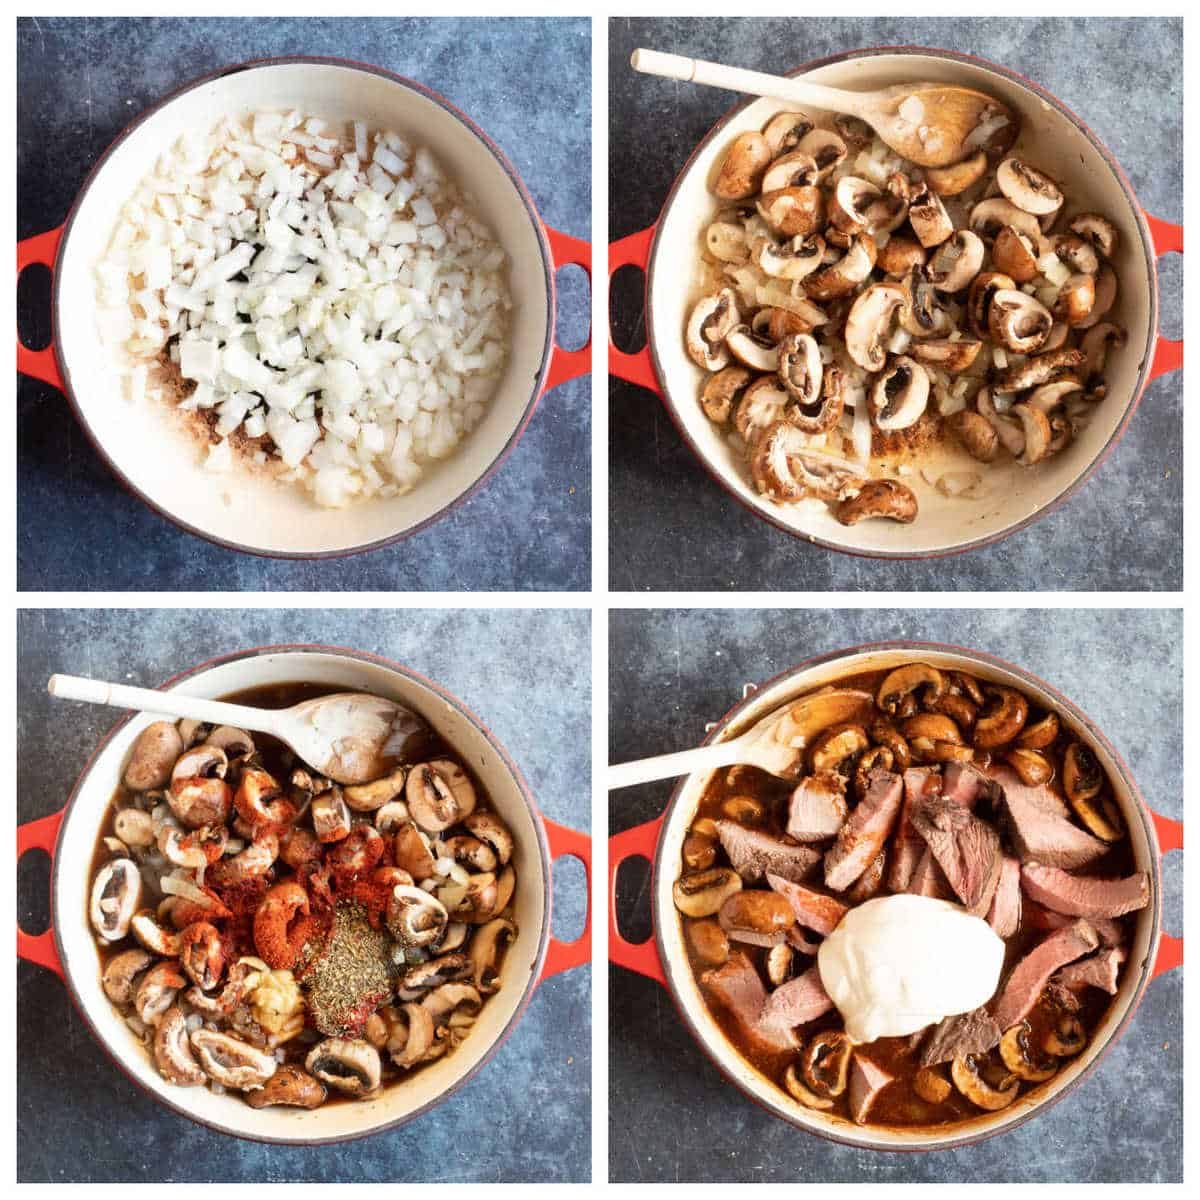 Step by step photo instructions for making leftover roast beef stroganoff.